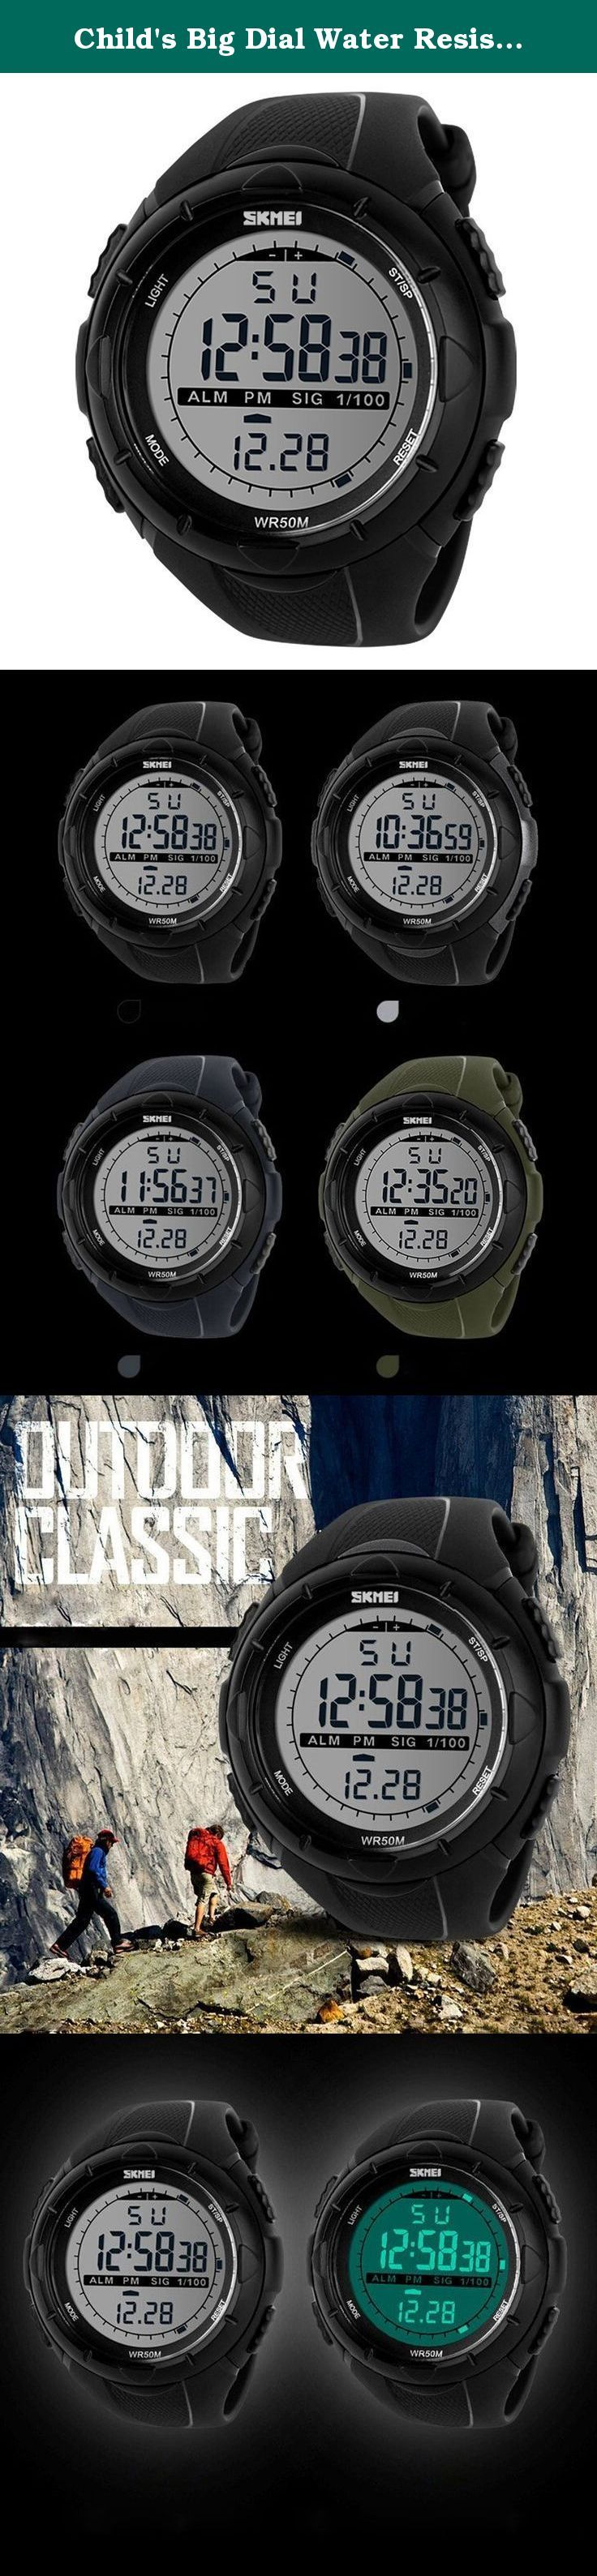 Child's Big Dial Water Resistant Watch Students LED Watches Boys and Girls Sports Wristwatch- Black. A variety of styles you can choose in our store ! Package Included: 1 x Watch Please Note: 1. Actual color may vary from picture due to computer settings. 2. Find store front of Sunny world, more surprises are waiting for you! Dear Buyer, Thanks for your continuous support to our store, and we are always striving to improve ourselves in terms of service, quality, sourcing, etc. It would be...